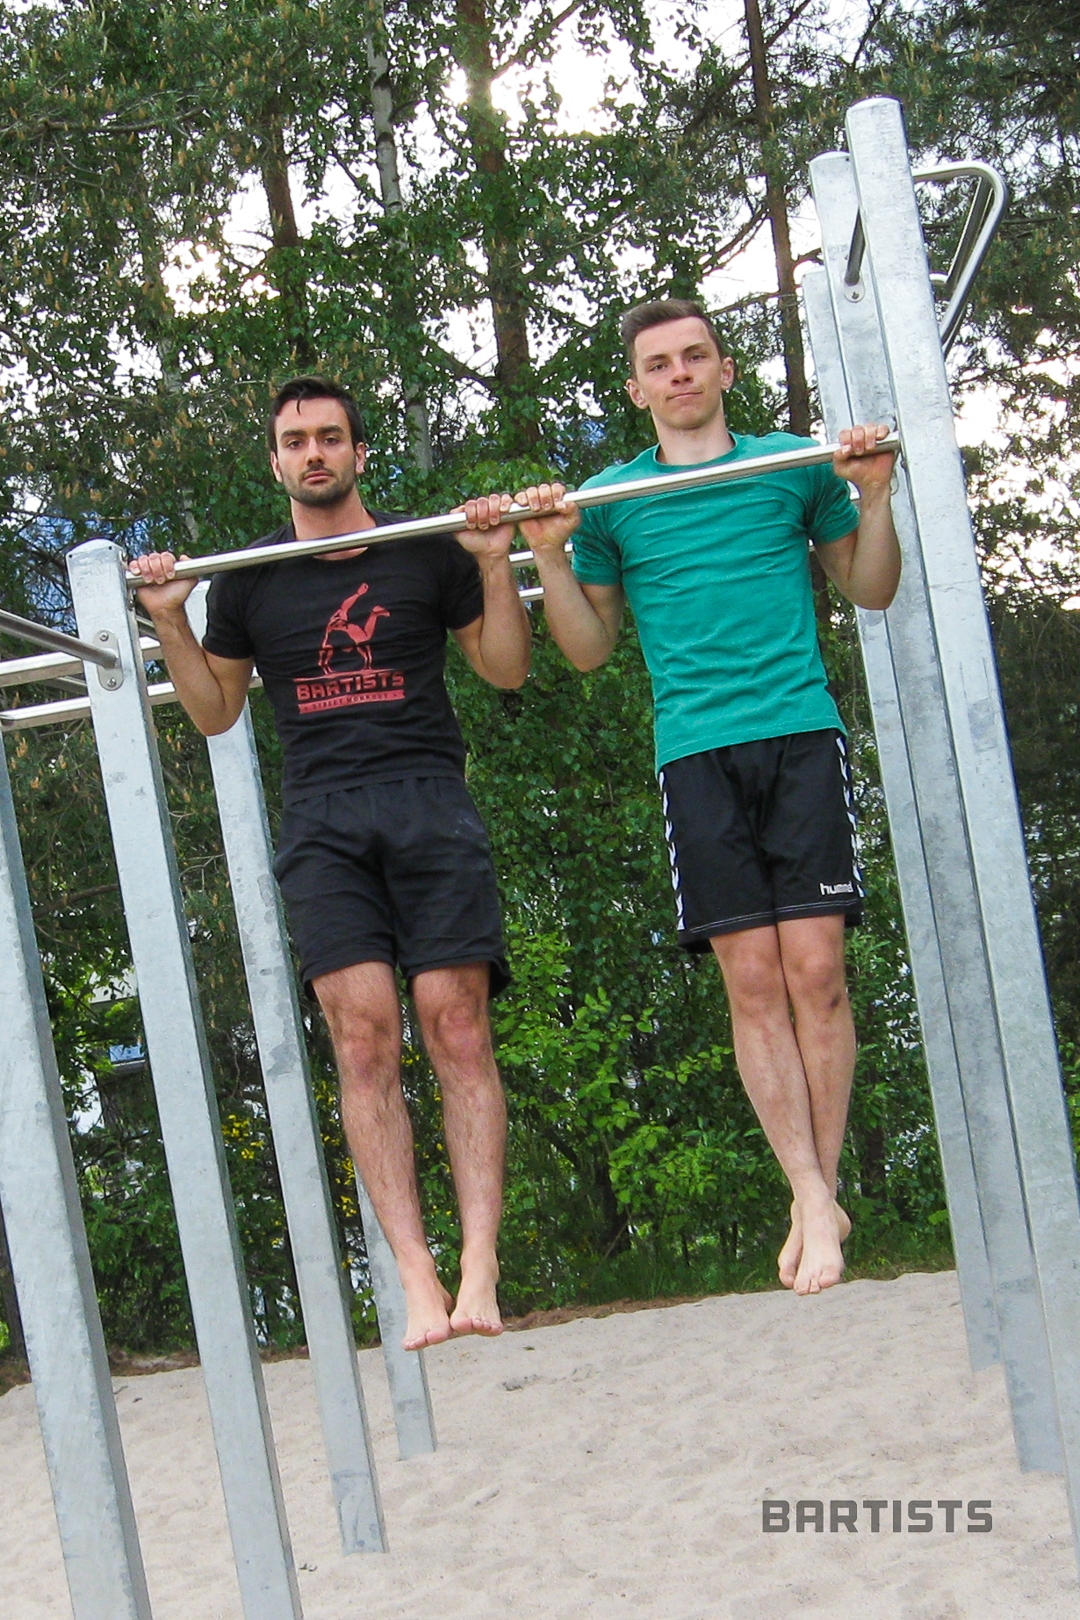 Sebastian & Luca at the new Workout Park in Kaiserslautern